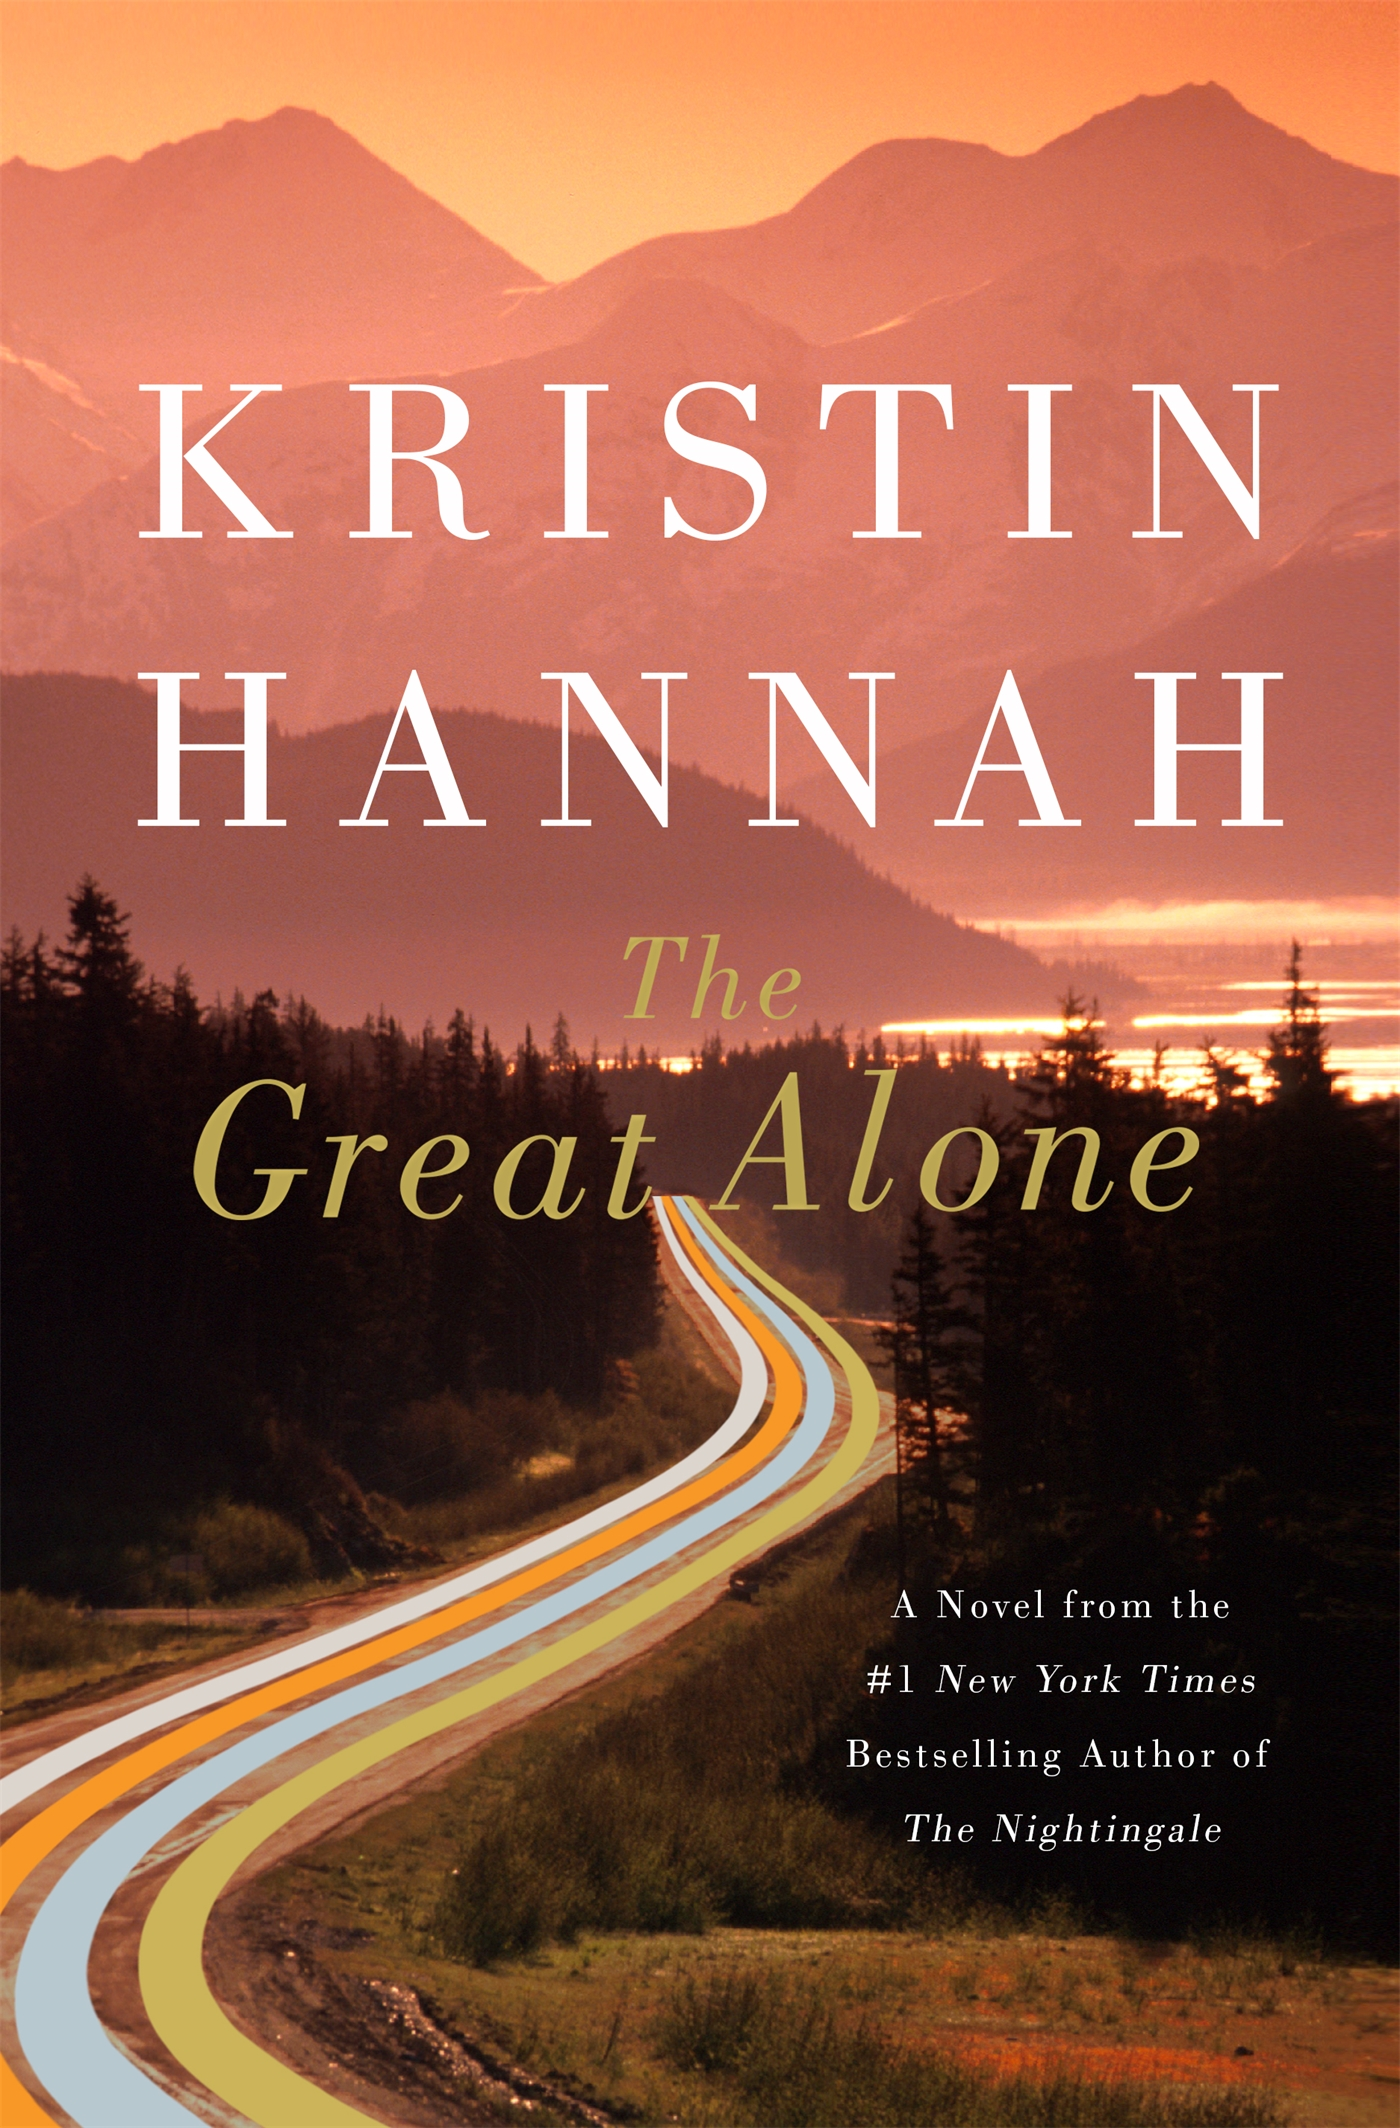 The New York Times Best Seller List New York Times Famous Sellers 2020 Fiction.Kristin Hannah Author